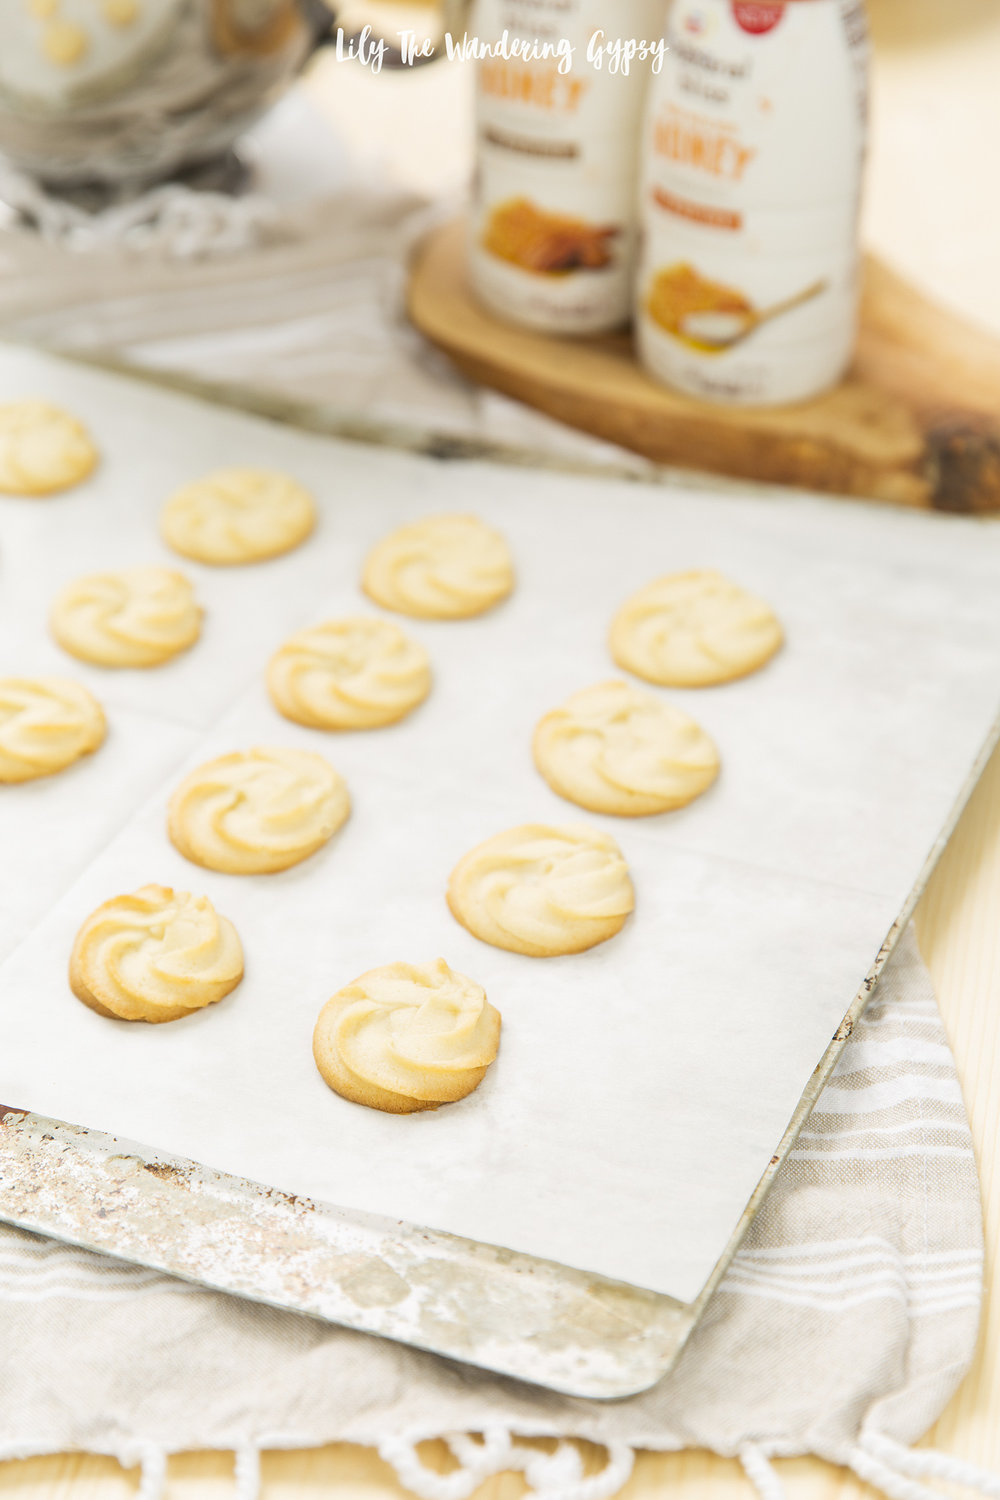 Honey Butter Pecan Swirl Cookies Recipe #FlavorYourSpring